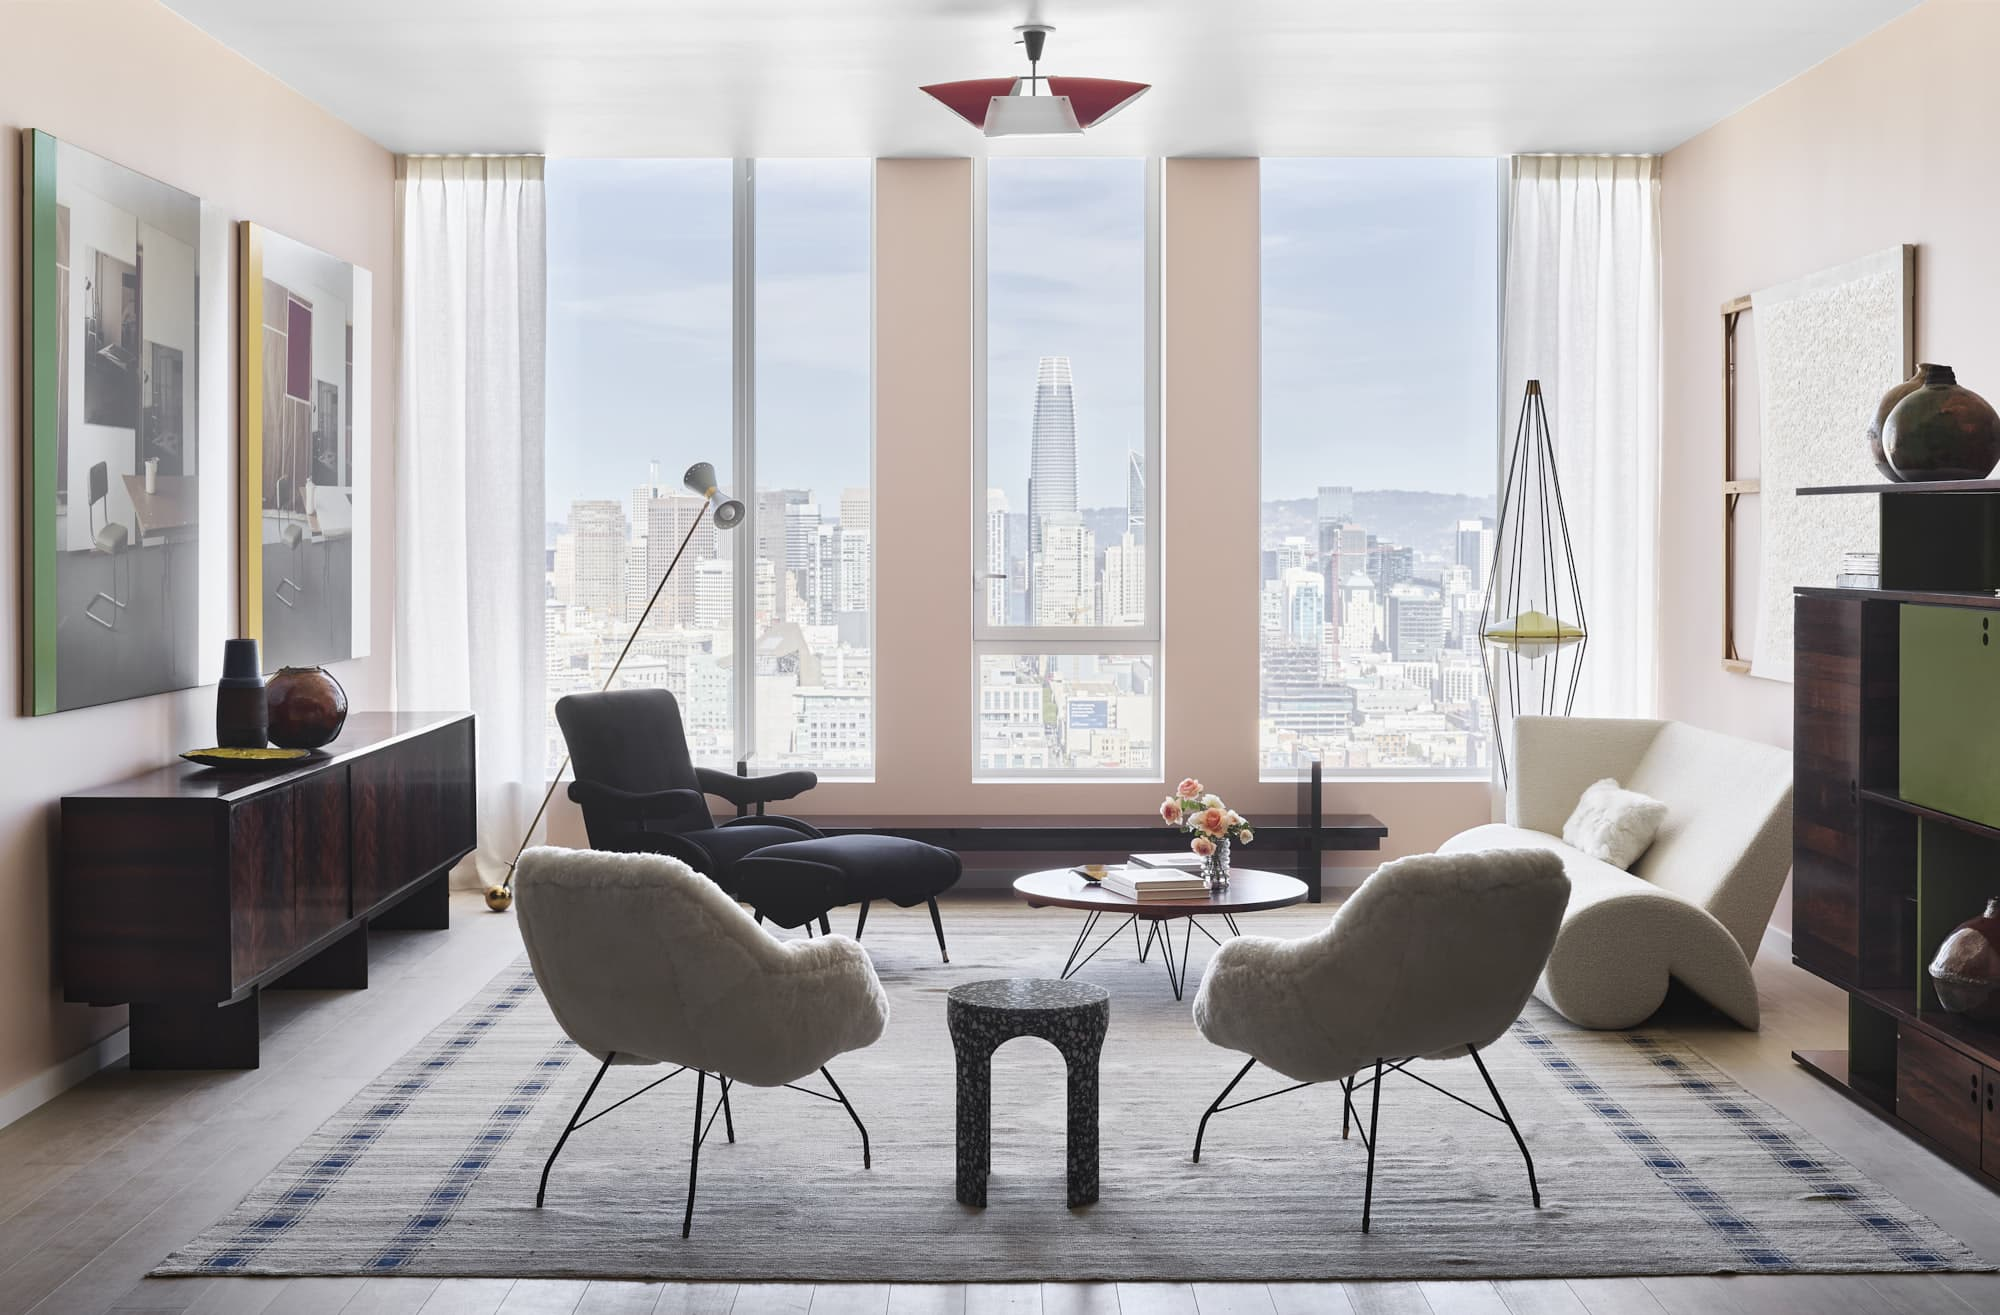 The living room of Gabriel & Guillaume's staged apartment at Fifteen Fifty in San Francisco